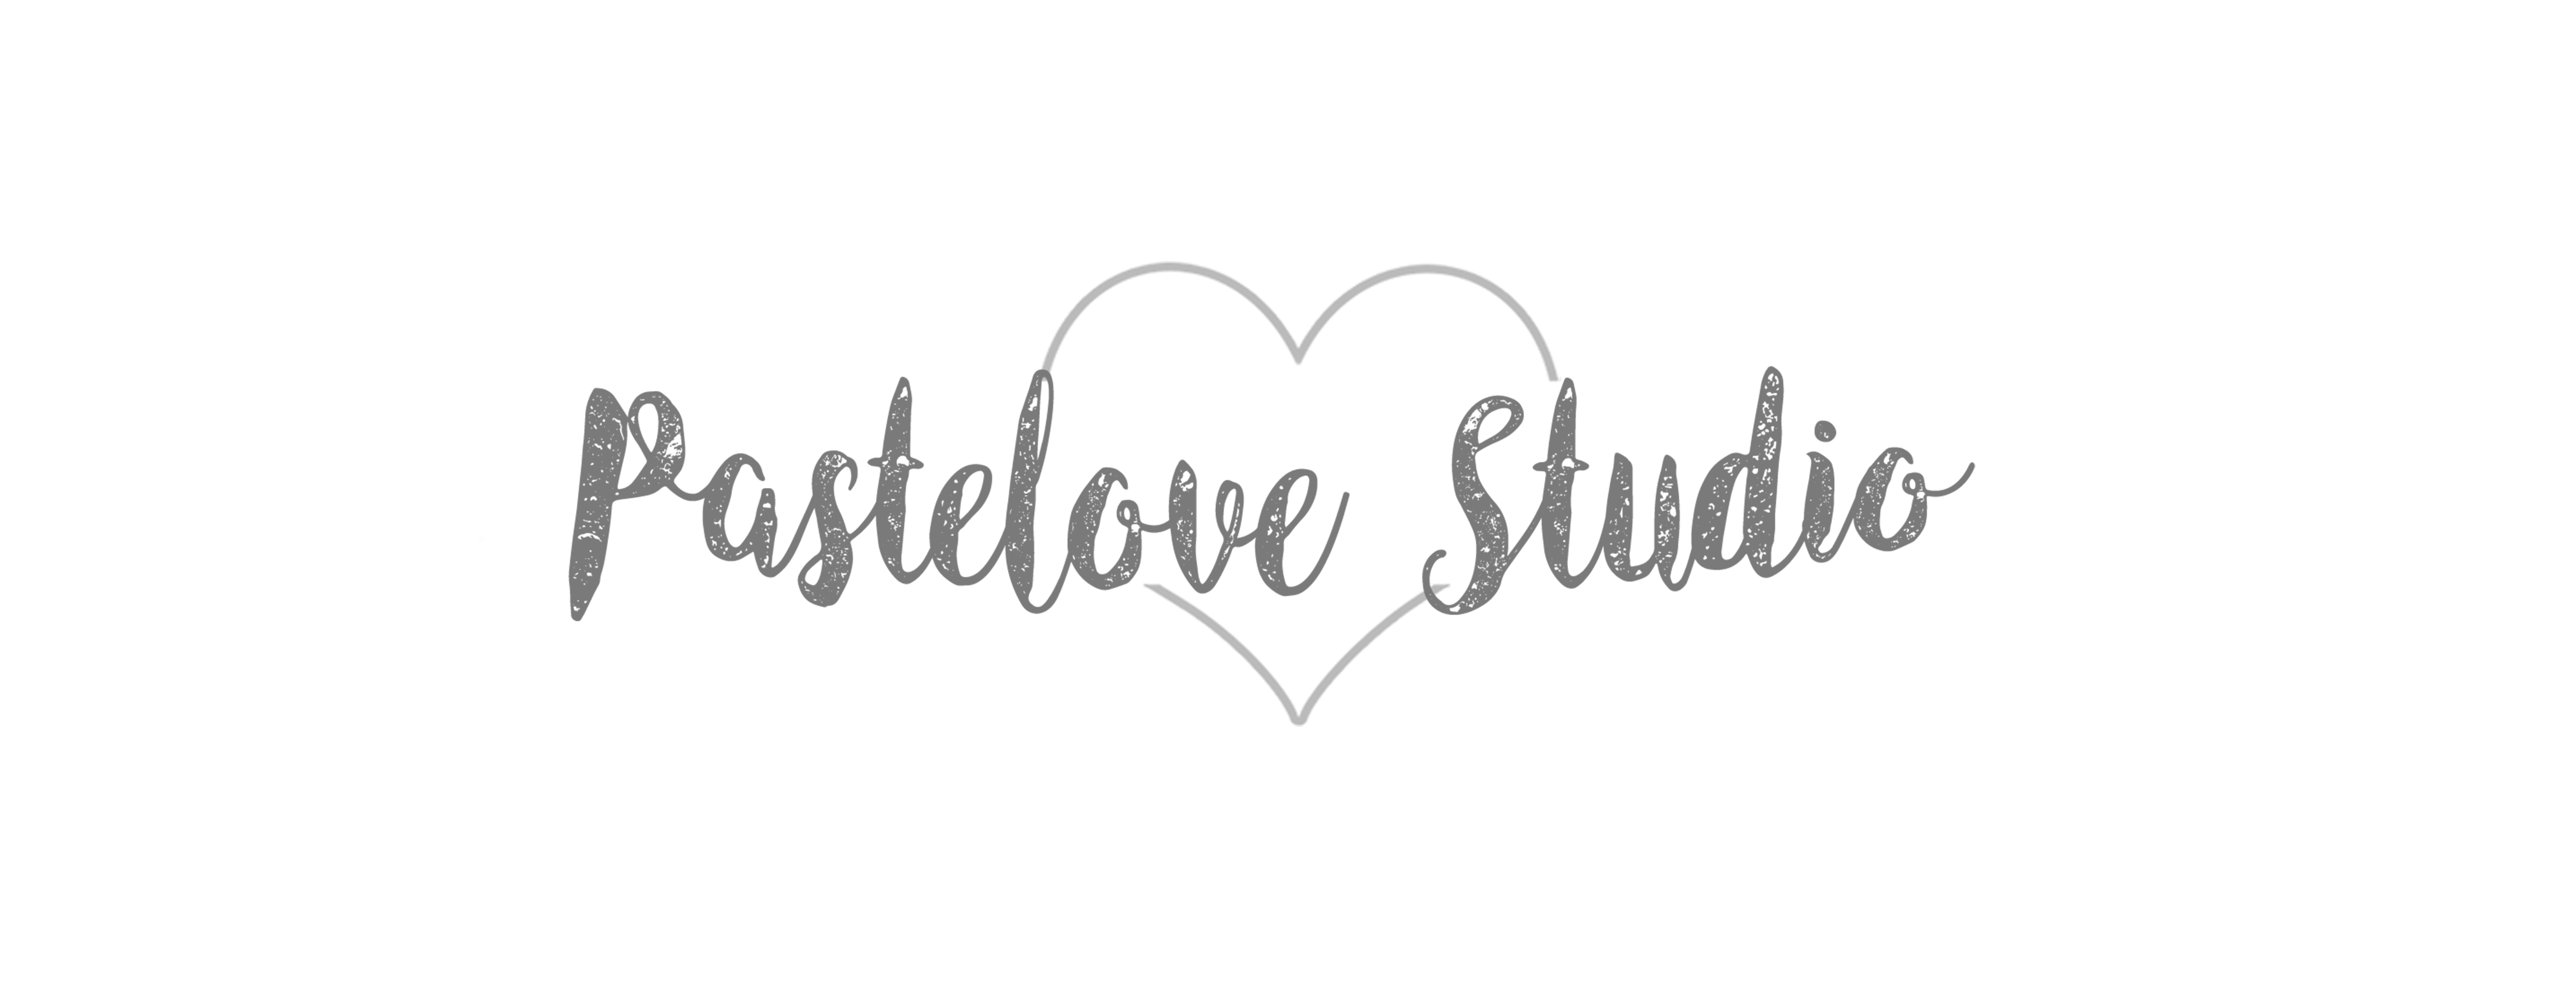 Pastelovestudio